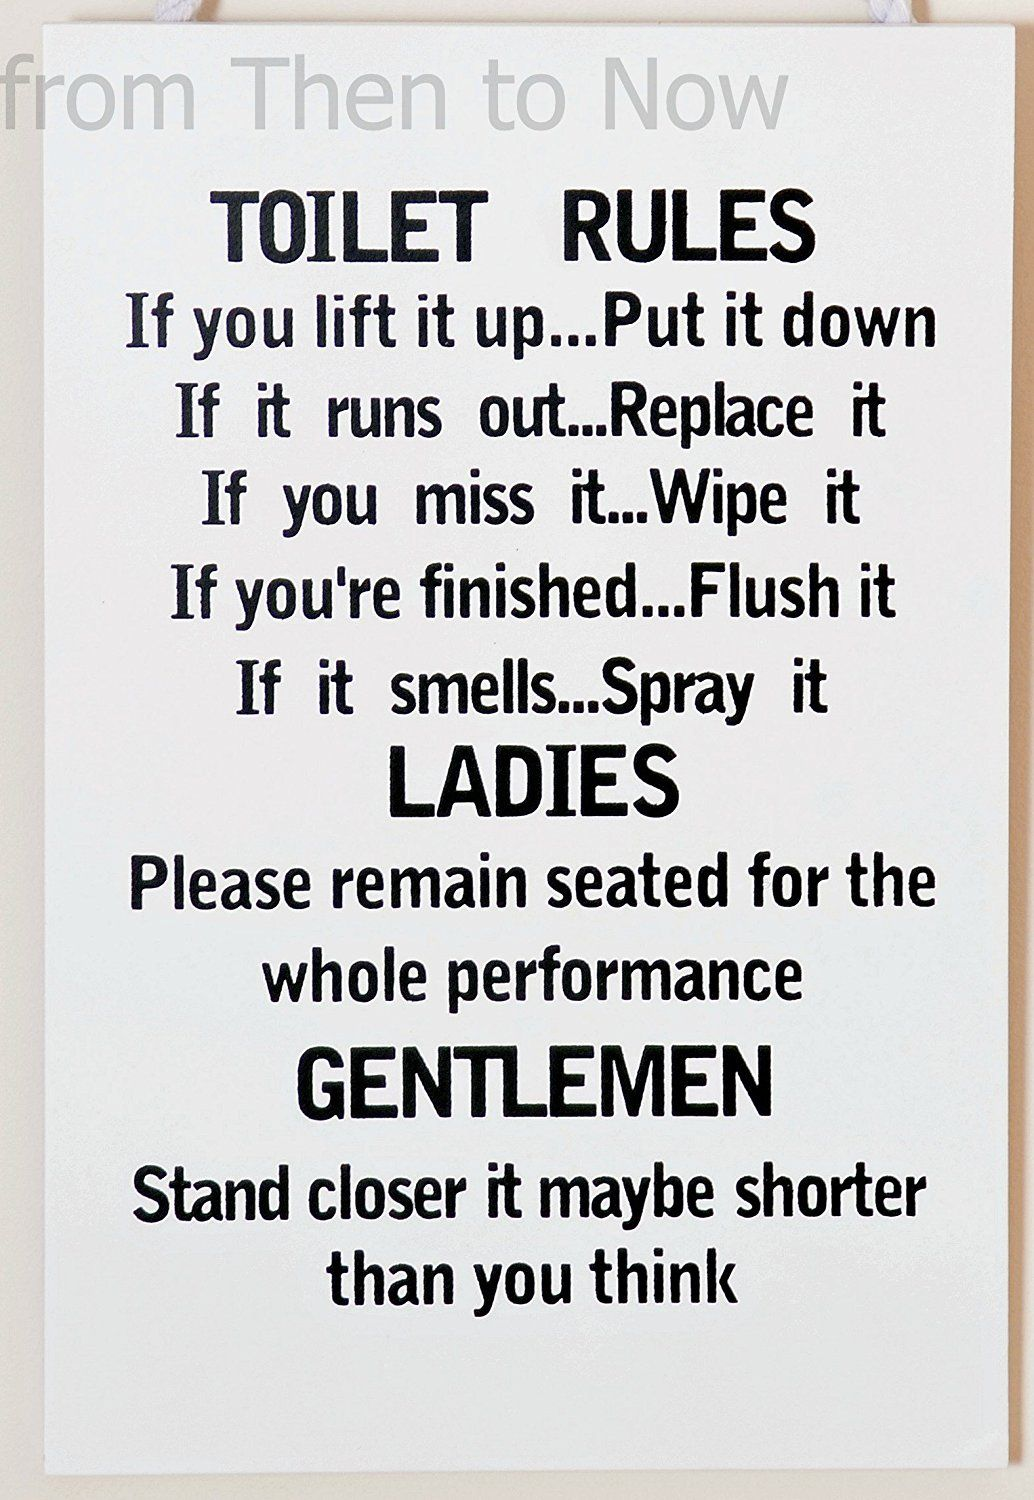 best men posters etiquette bathroom humorous restroom free funny signs toilet printable rules sign